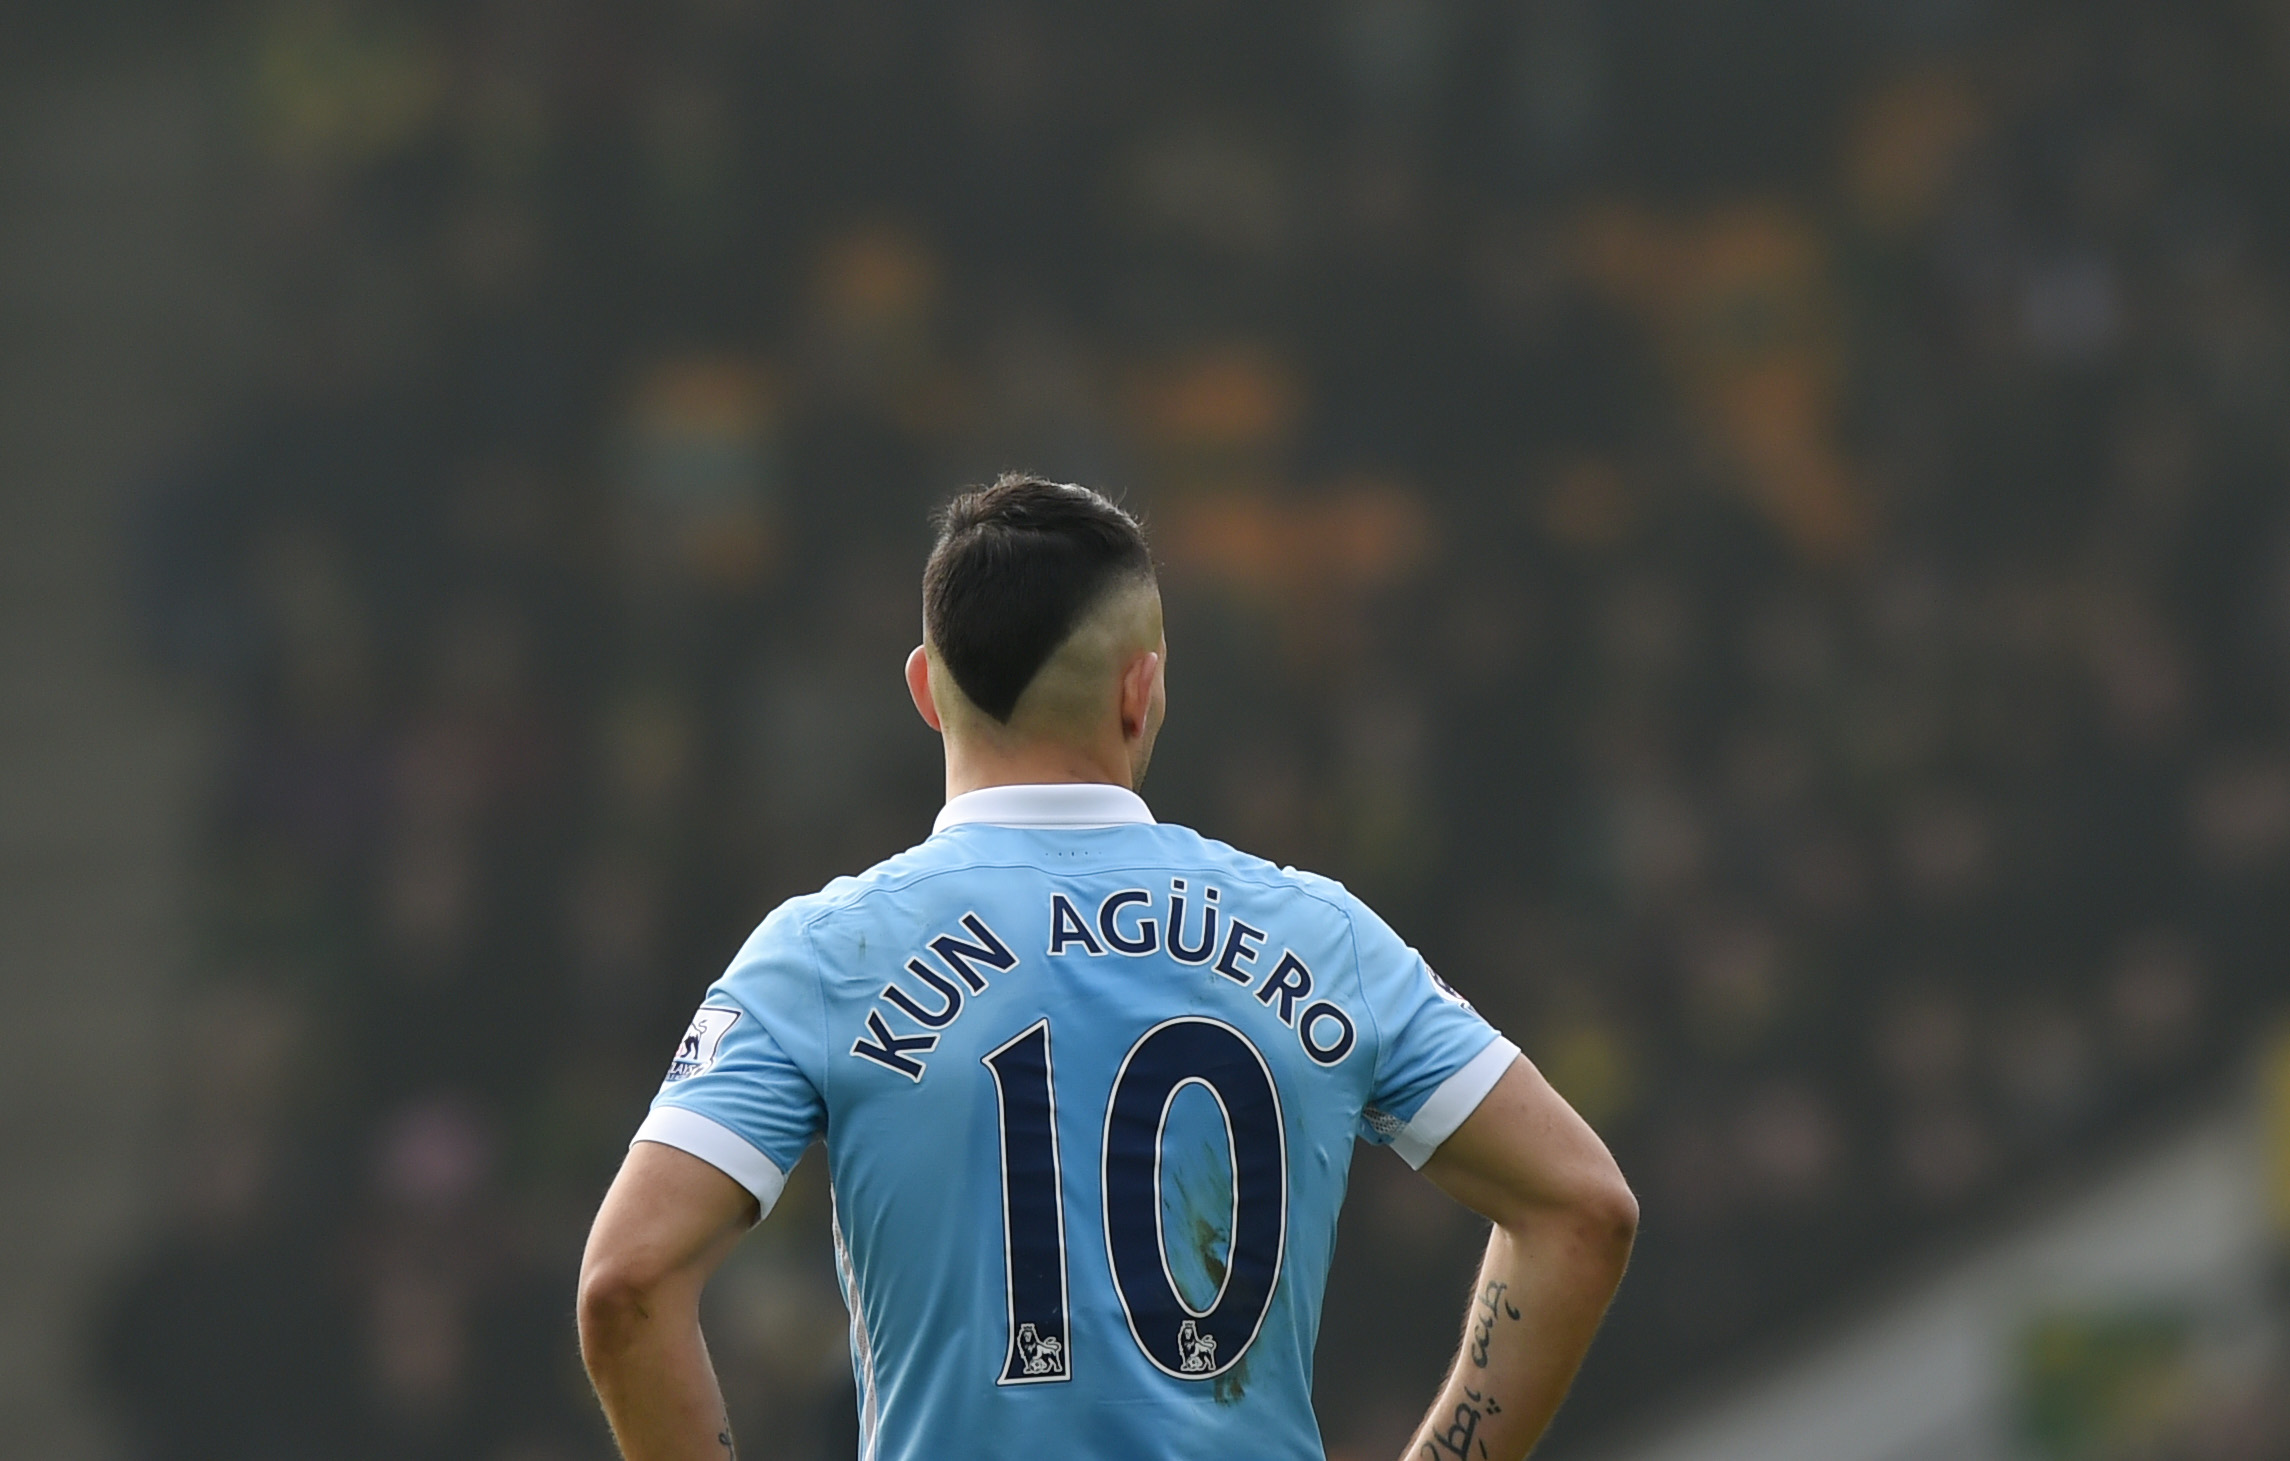 → The 2014/15 season was Sergio Aguero's best ever for Fantasy returns. Seven of his goals/assists and 36 of his FPL points came in two meetings with which club that year?